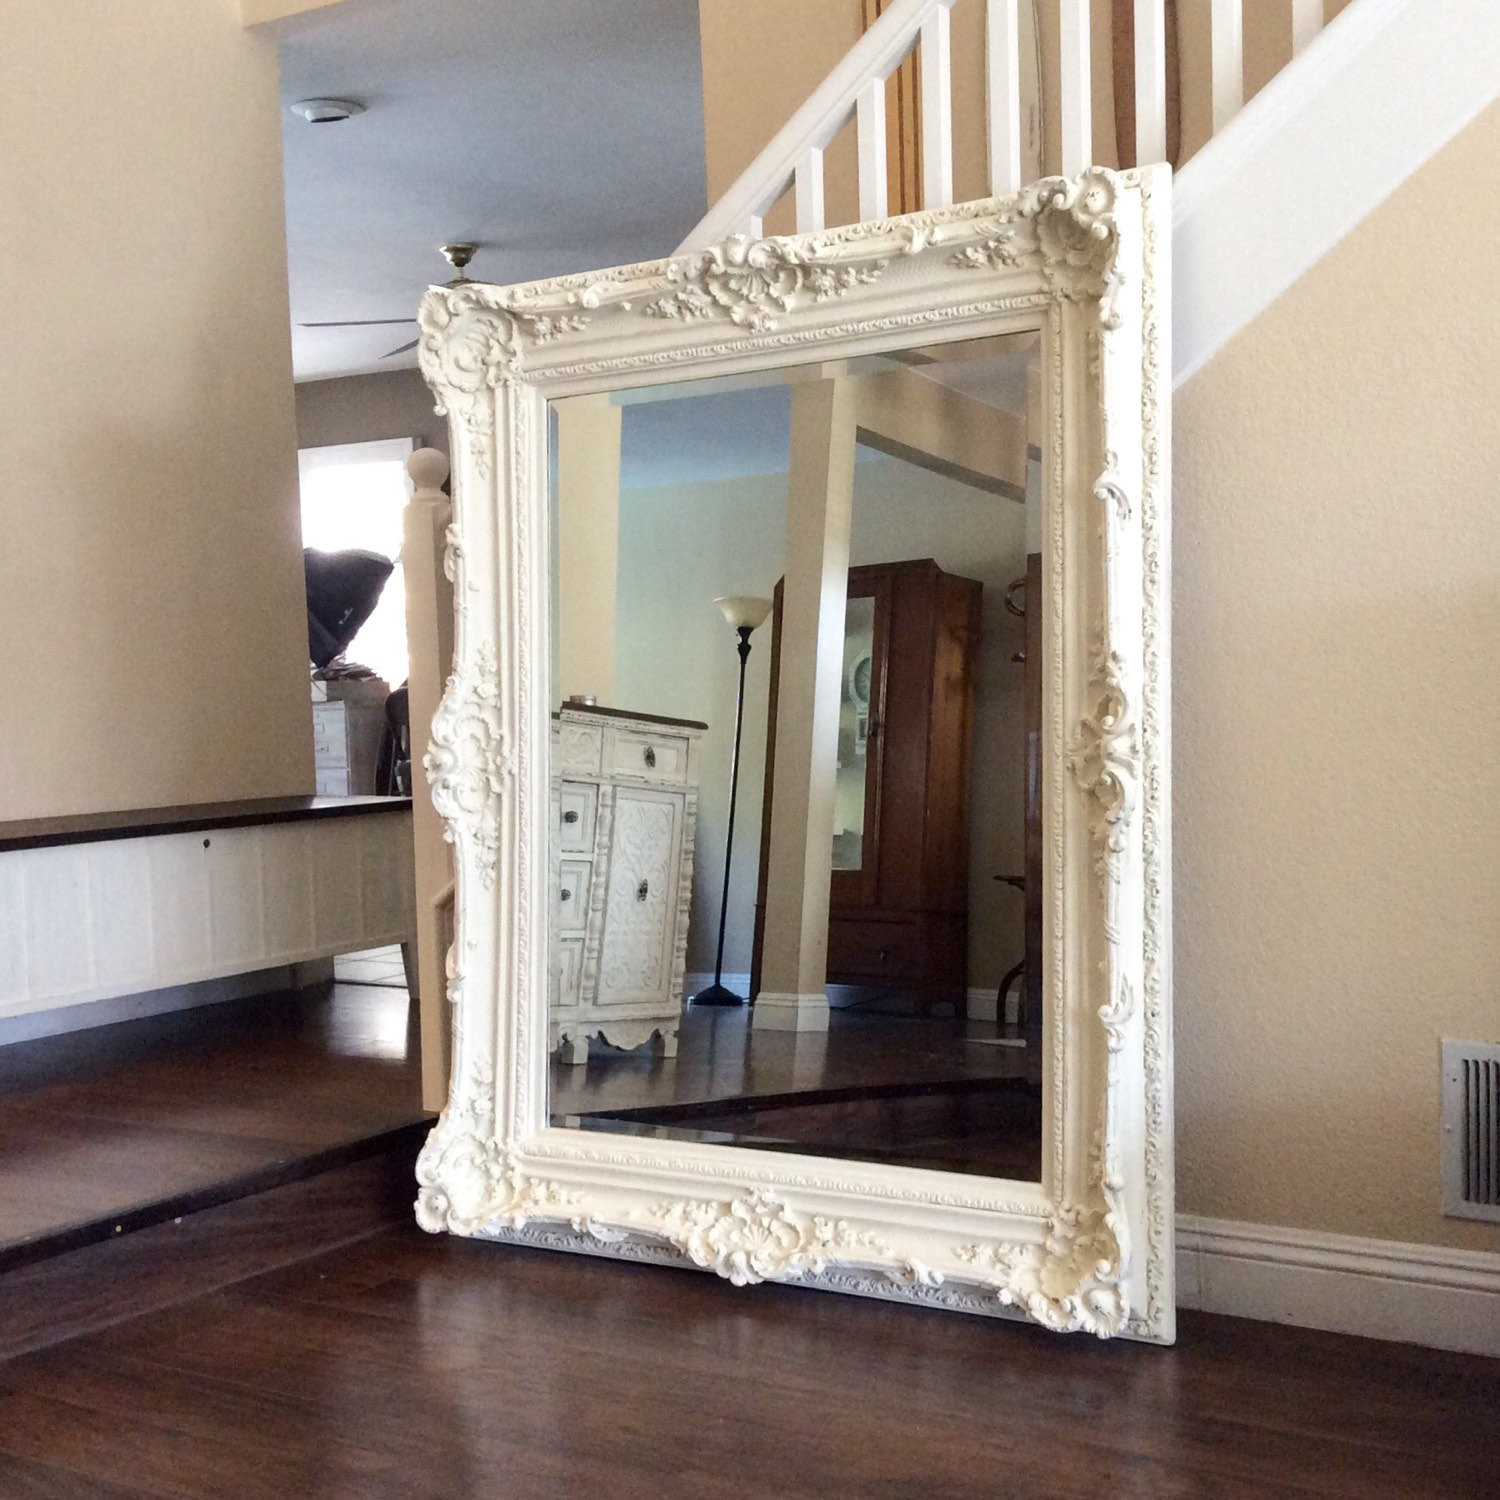 Gorgeous Ornate Mirror For Sale Large White Mirror Shabby Chic Wall Mirror Nursery Decor Ornate Furniture Home And Living